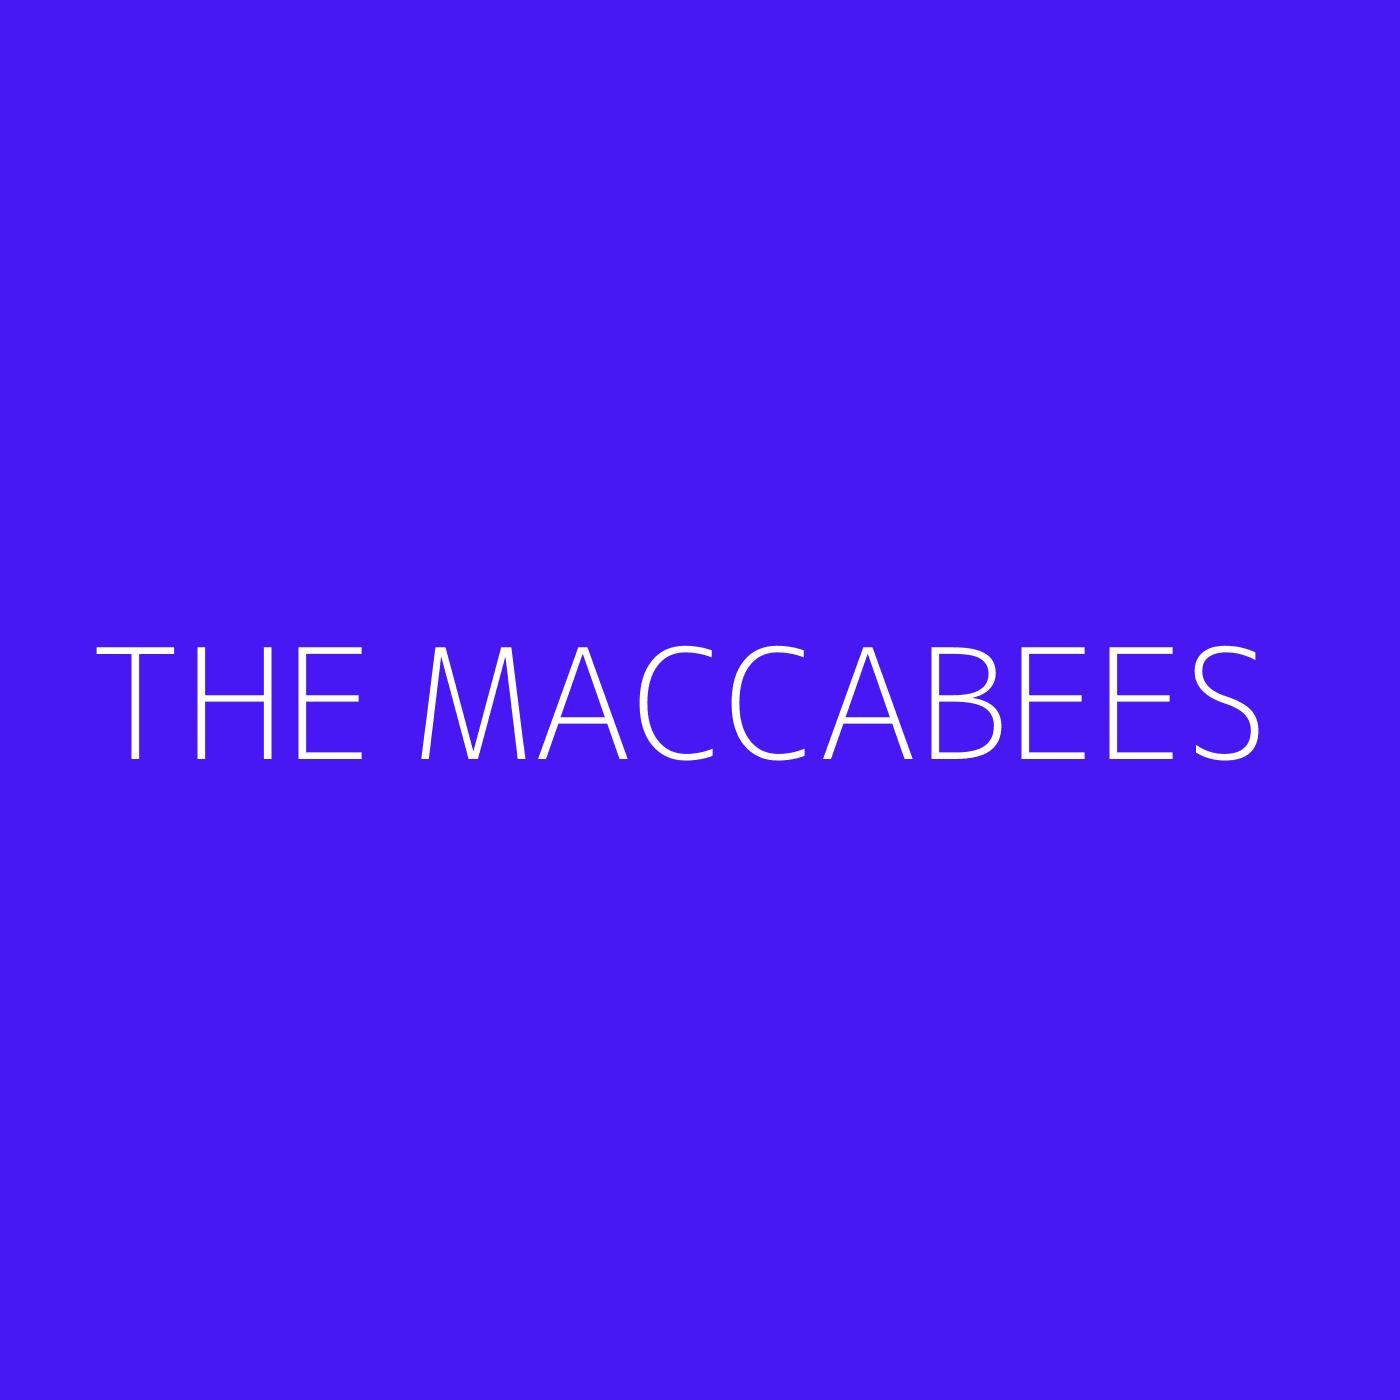 The Maccabees Playlist Artwork